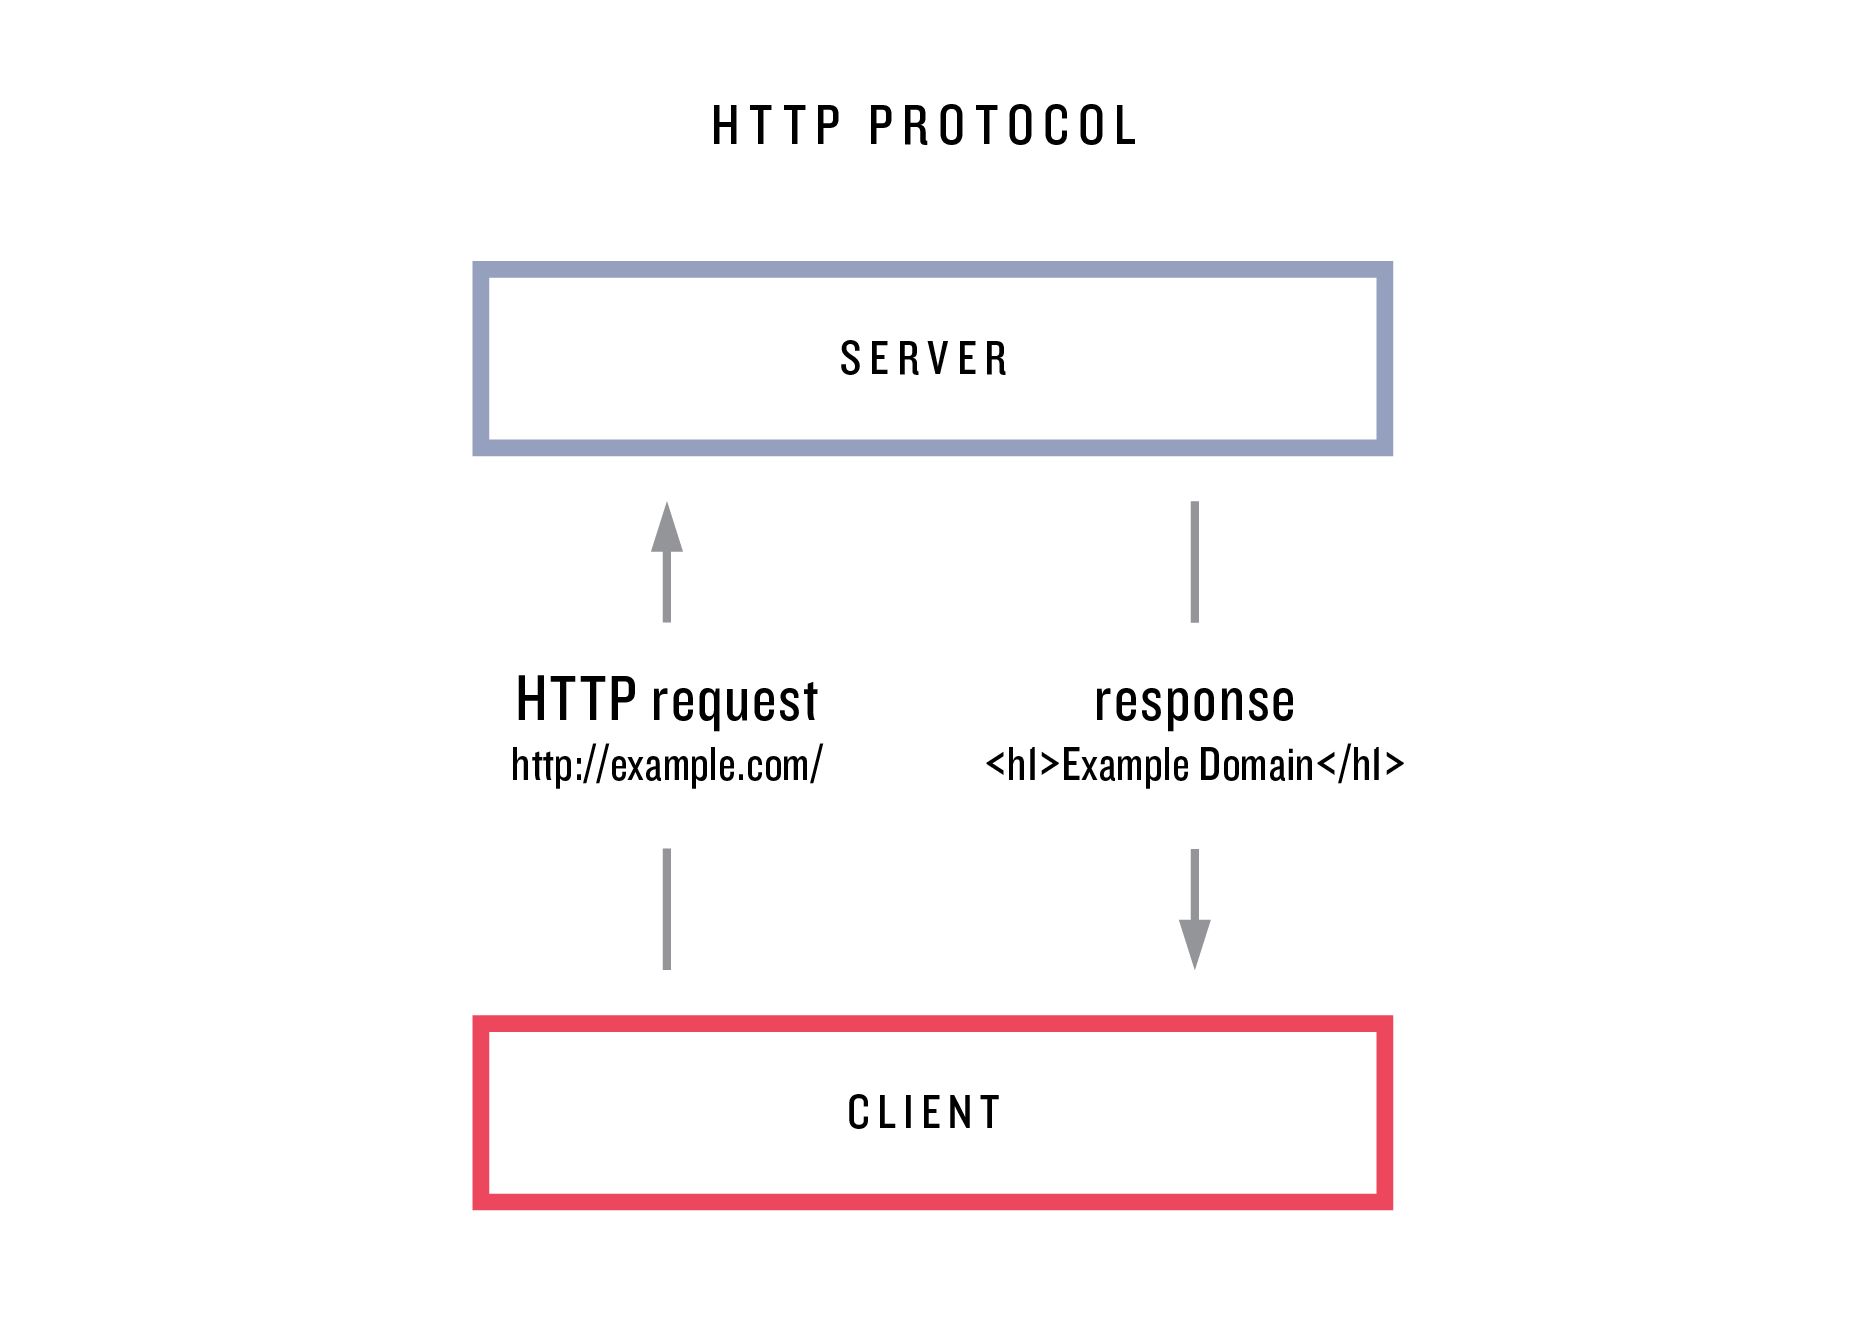 images/figures/http_protocol